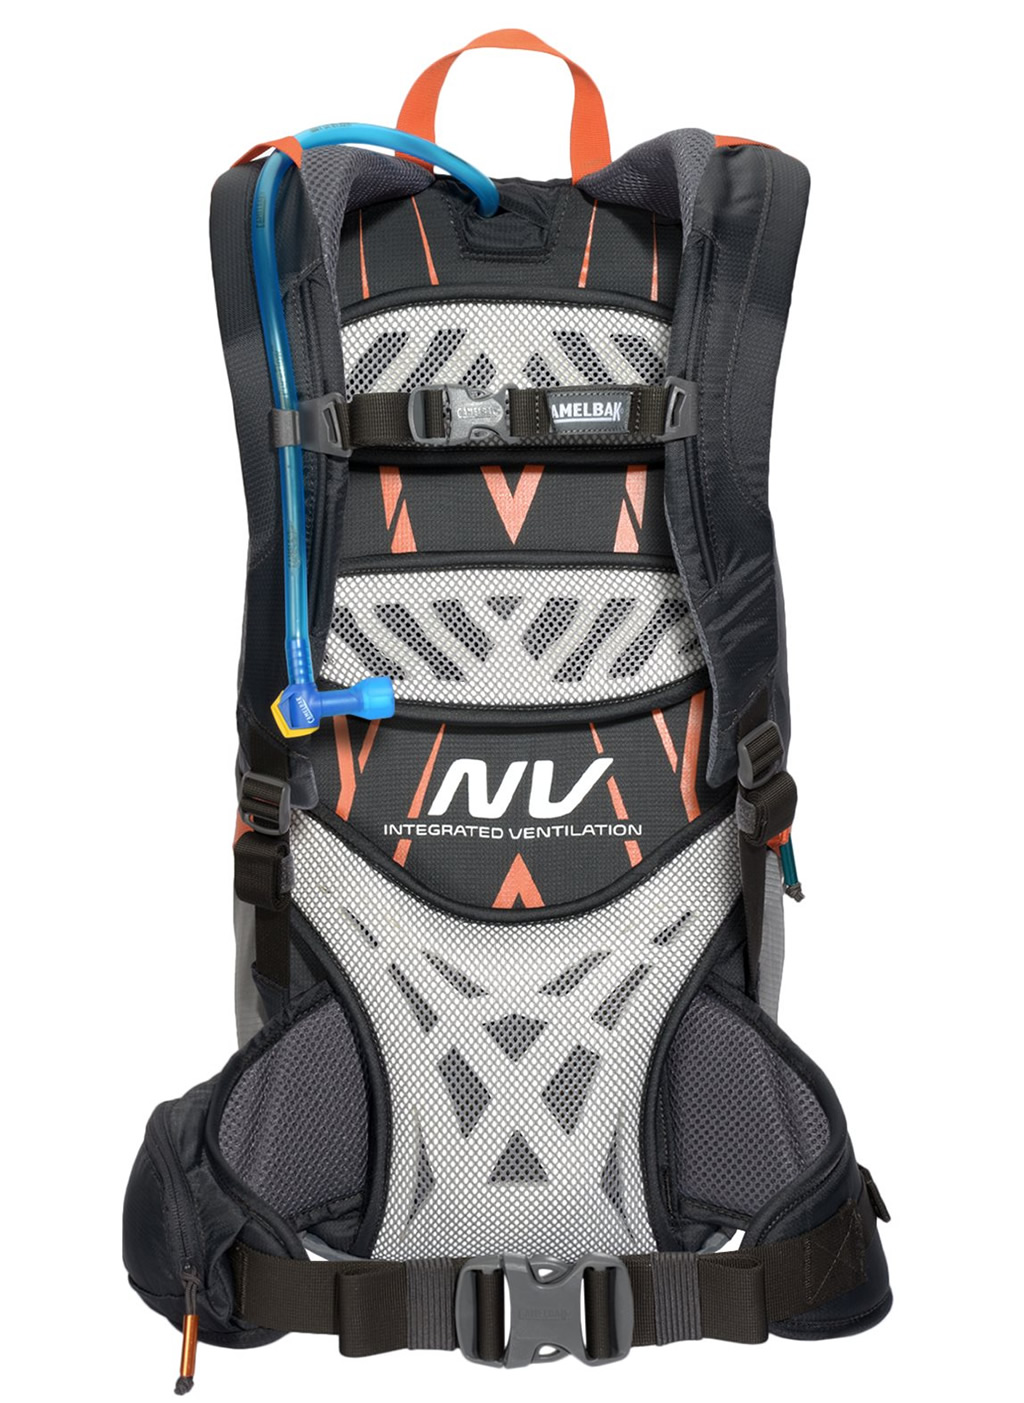 Fourteener 20L Hydration Backpack for Cycling